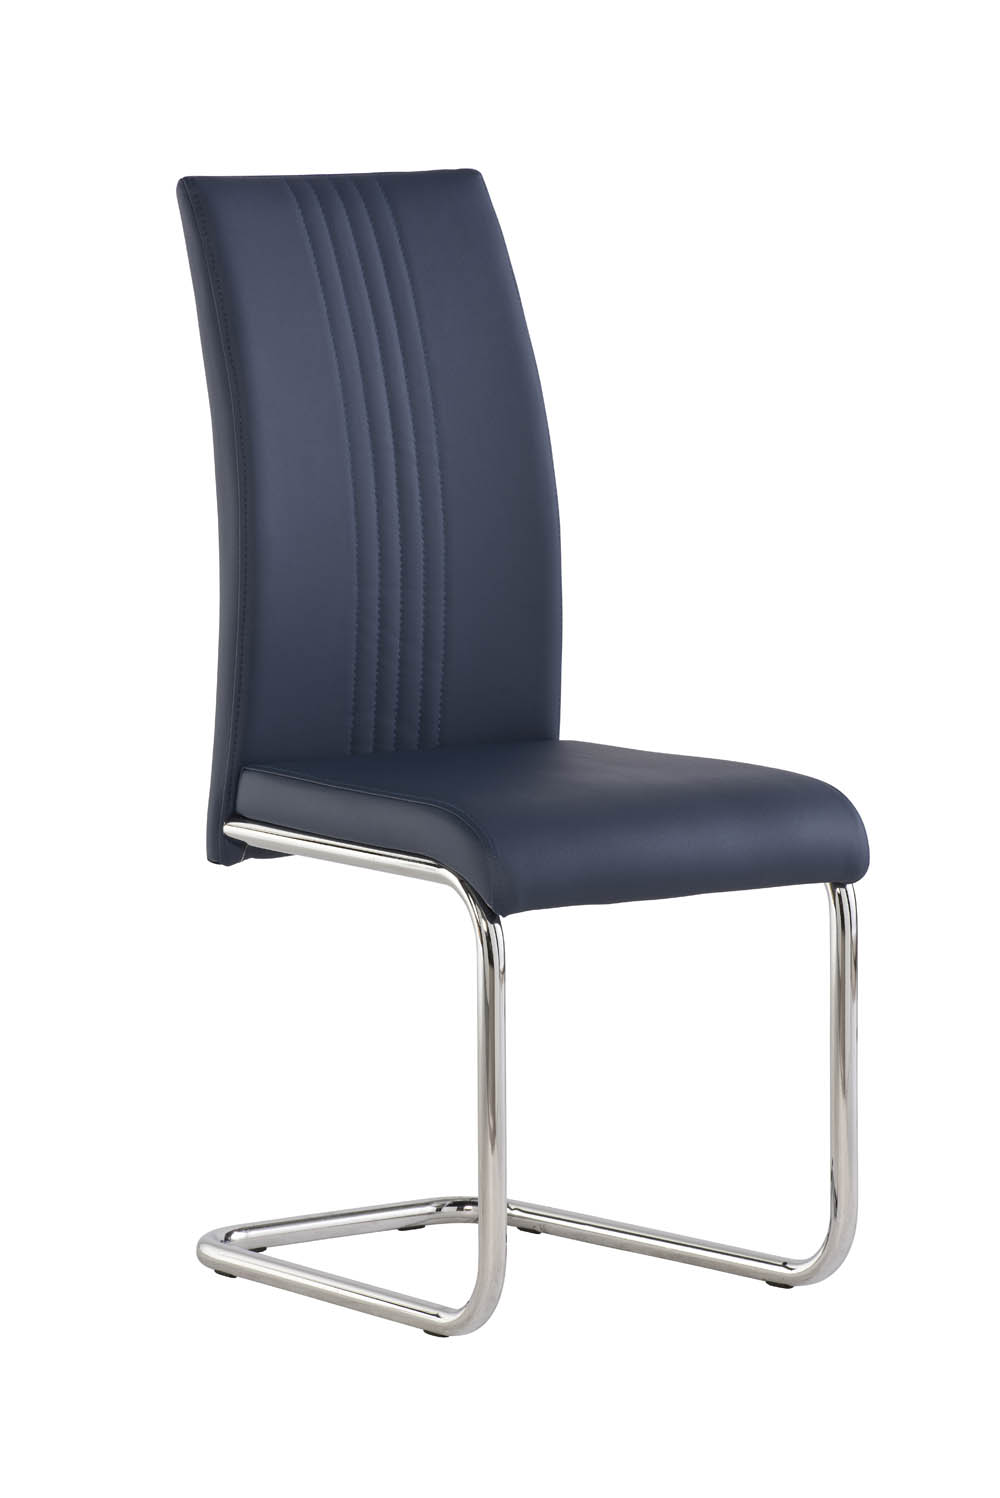 Monaco 1.6m Grey High Gloss Dining Table With 6 Monaco Blue Pu Leather Chairs